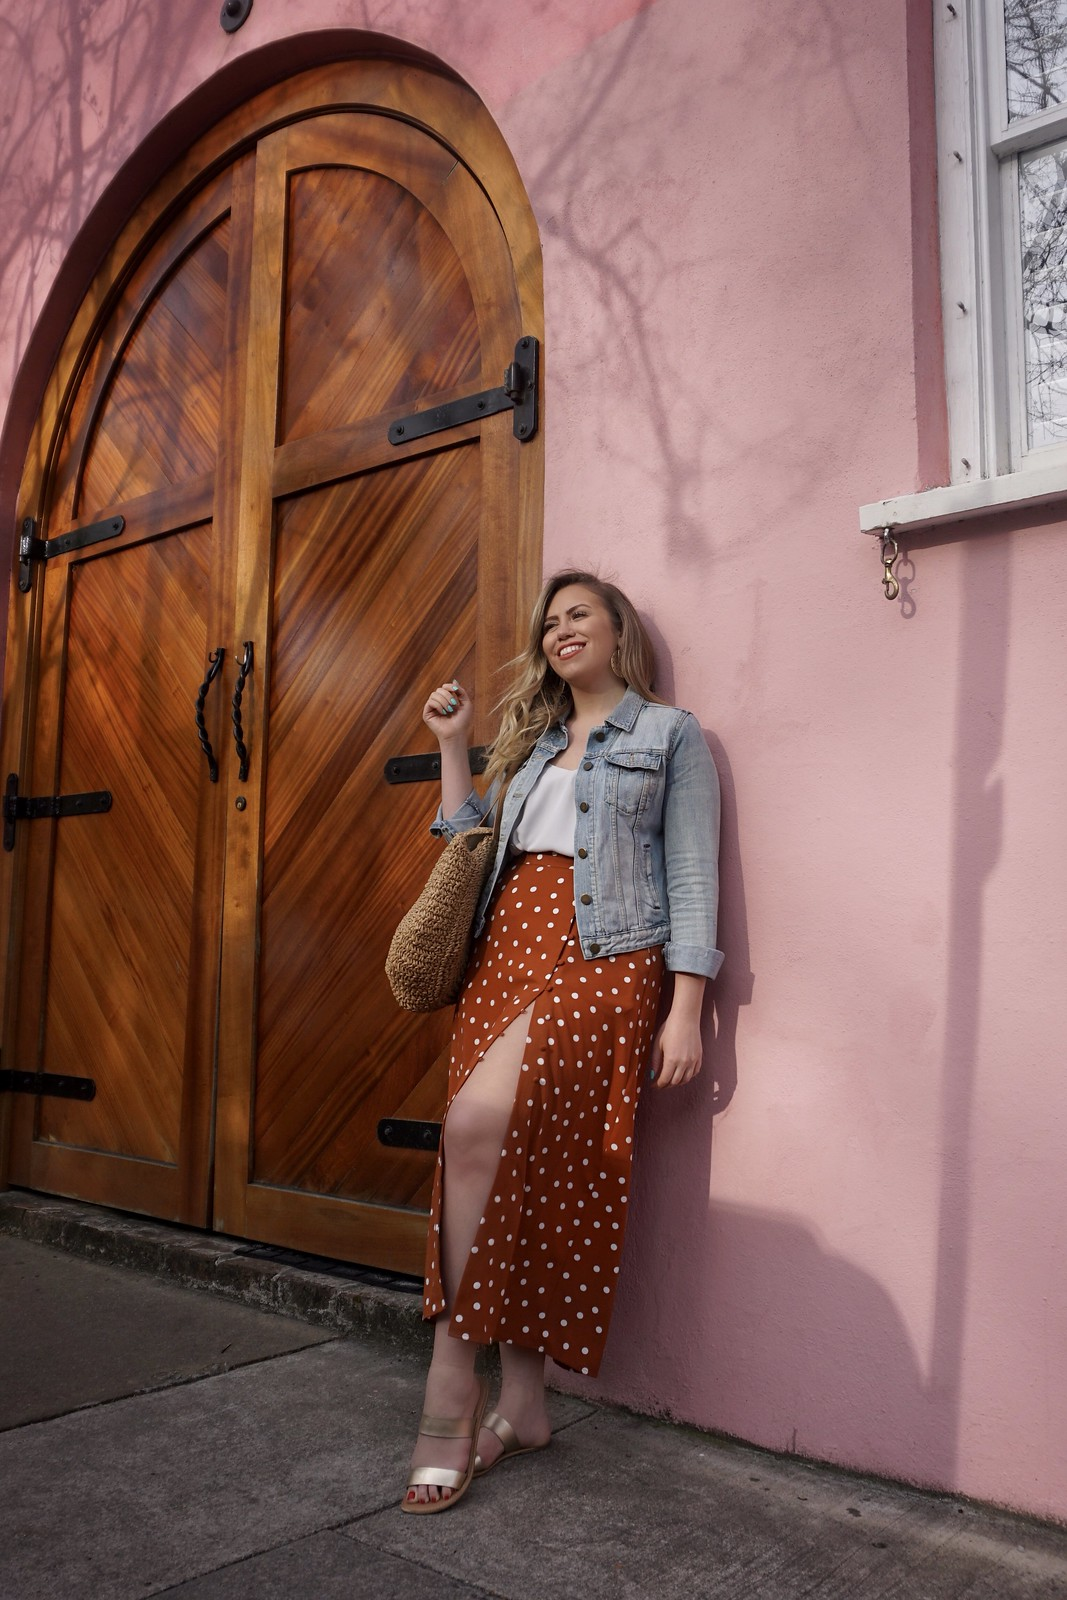 A New Day Target Rust Polka Dot Skirt | What to Wear in Charleston in the Spring | Charleston Packing List | Spring in Charleston | Best Outfits to Wear in Charleston | What I Packed for Charleston